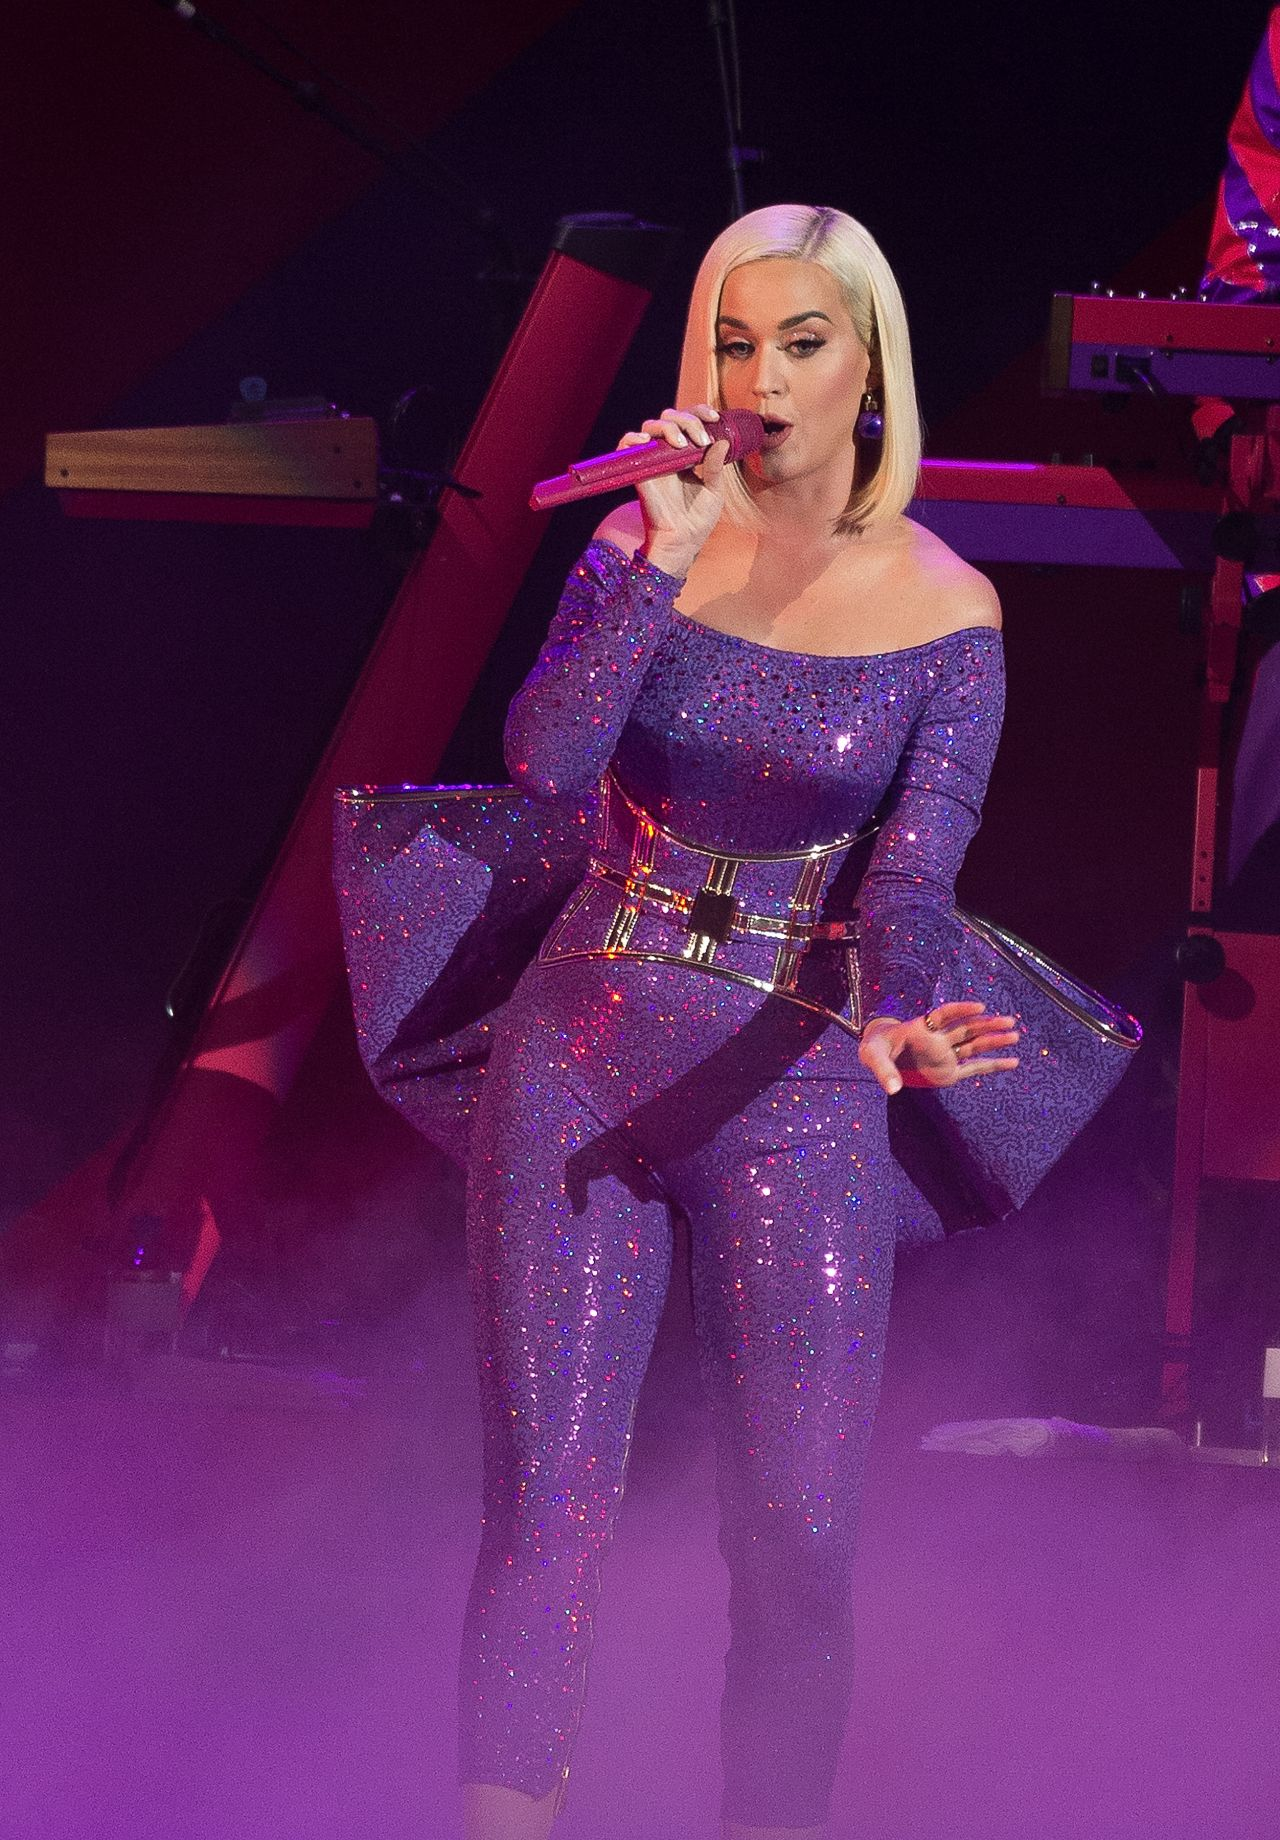 katy-perry-in-the-blonds-b96-jingle-bash-in-chicago